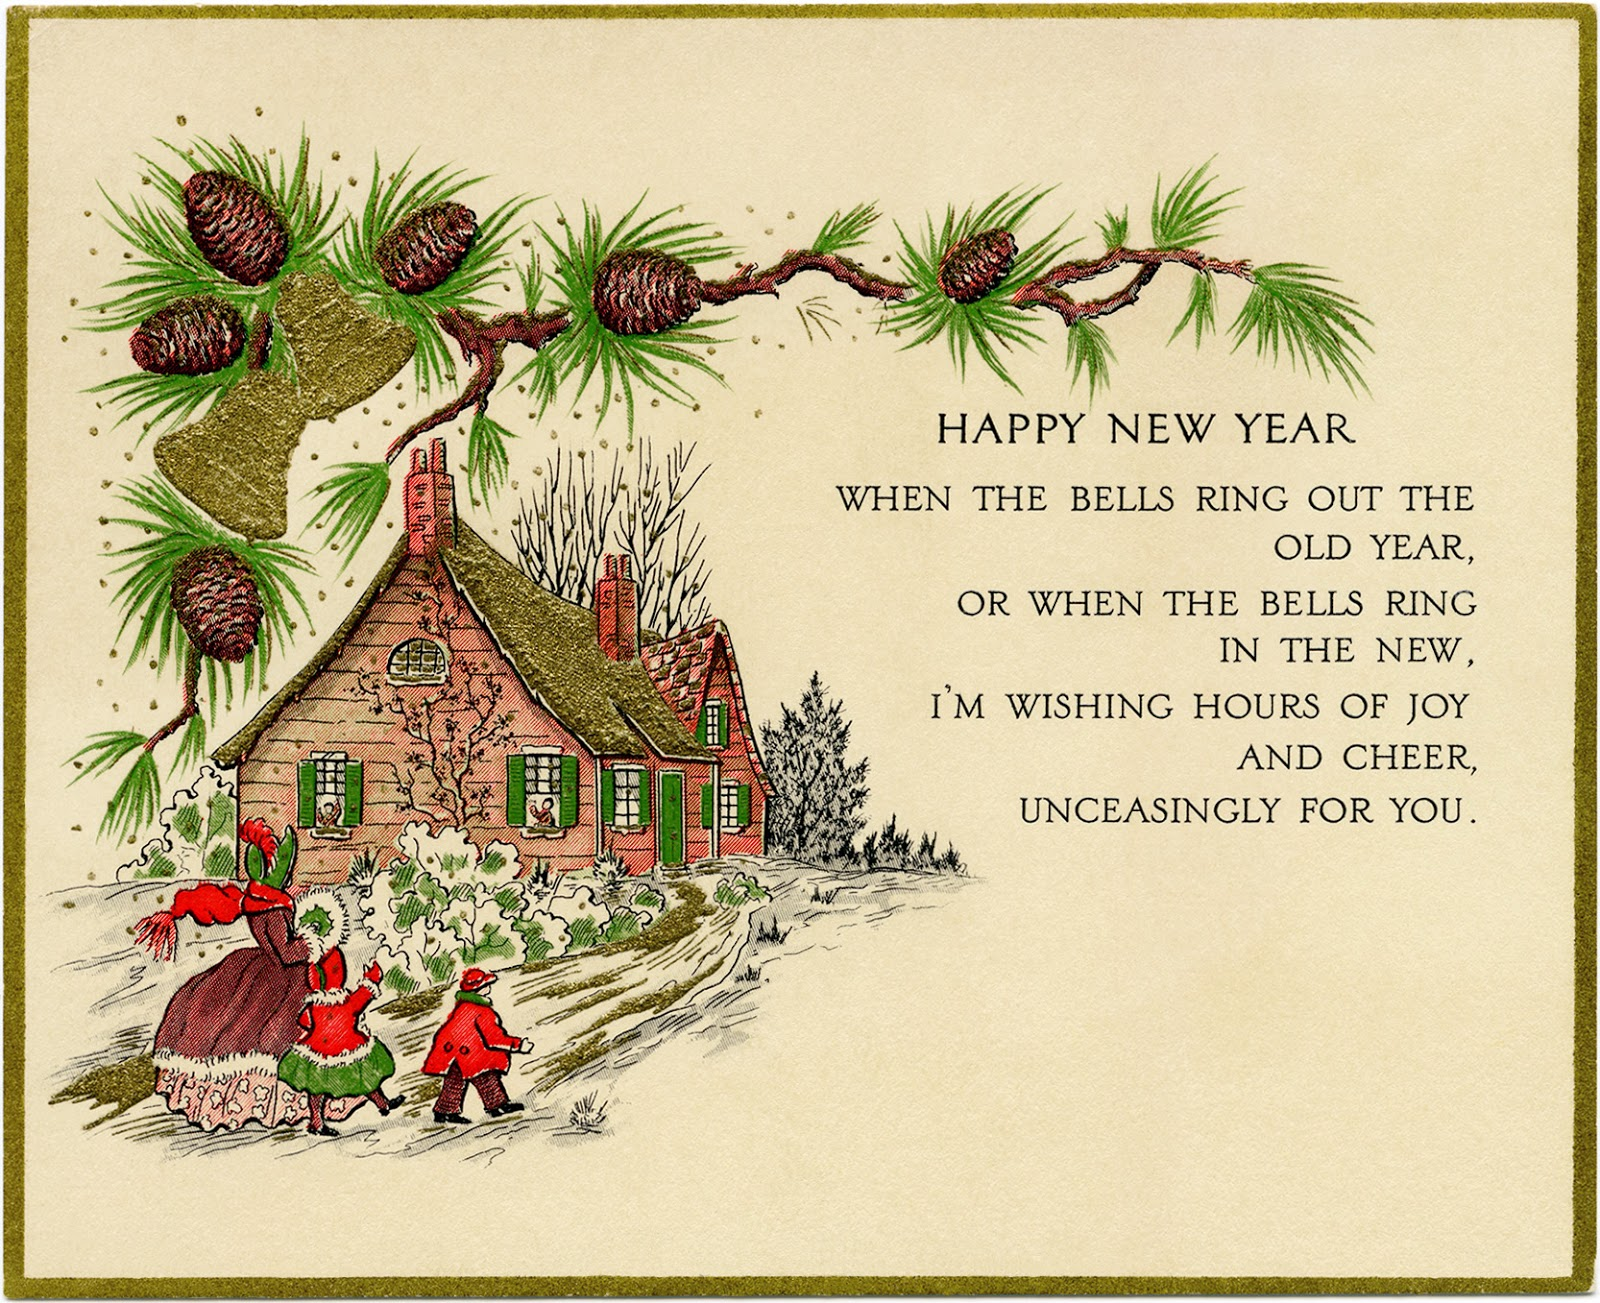 Mudmaven Designs Wishing Everyone All The Best In The New Year